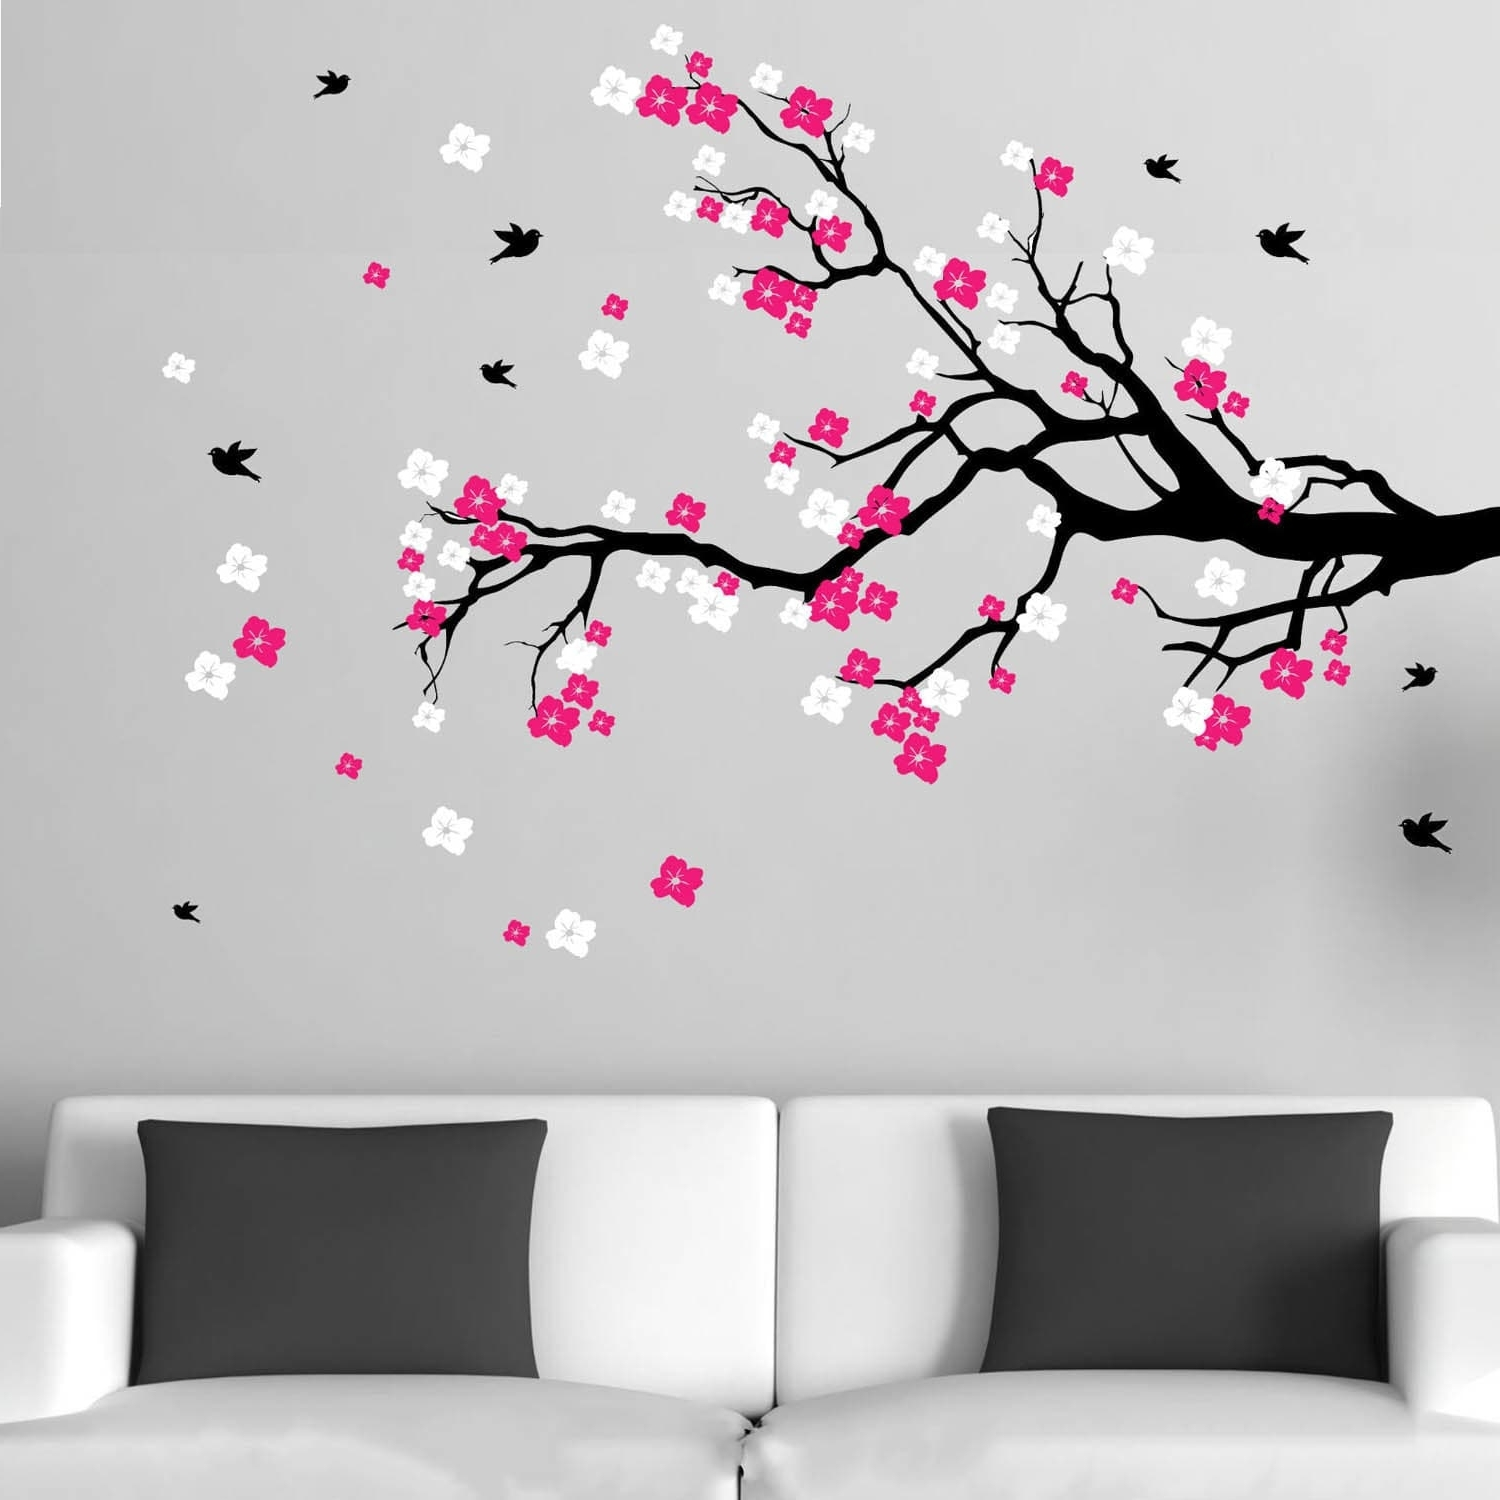 Cherry Blossom Vinyl Wall Art Regarding Most Popular Cherry Blossom Branch With Birds Vinyl Wall Art Decal – Free (View 6 of 15)